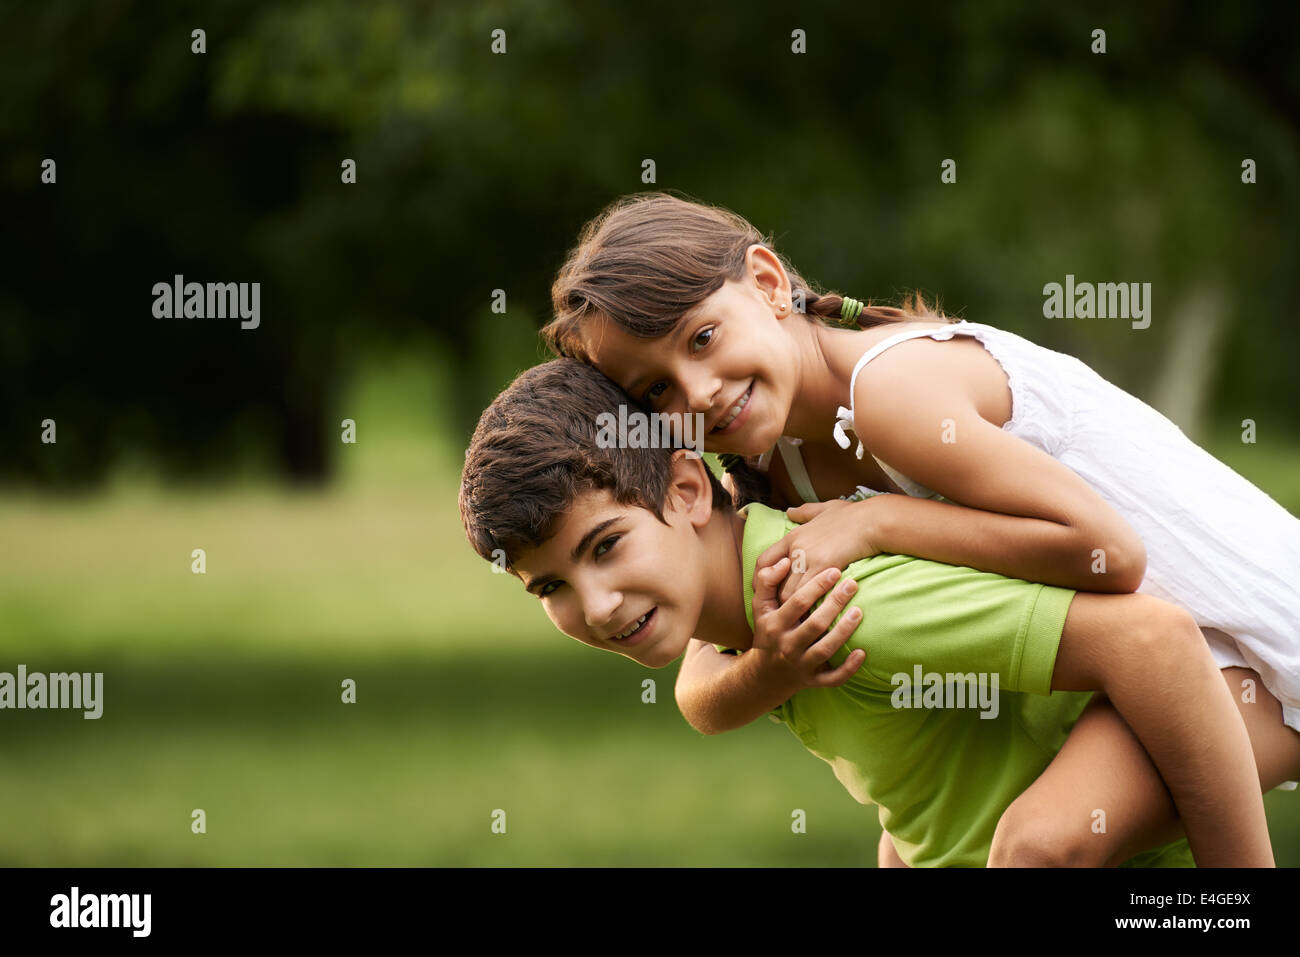 People in love with happy little girl and boy running piggyback in city park. Copy space - Stock Image